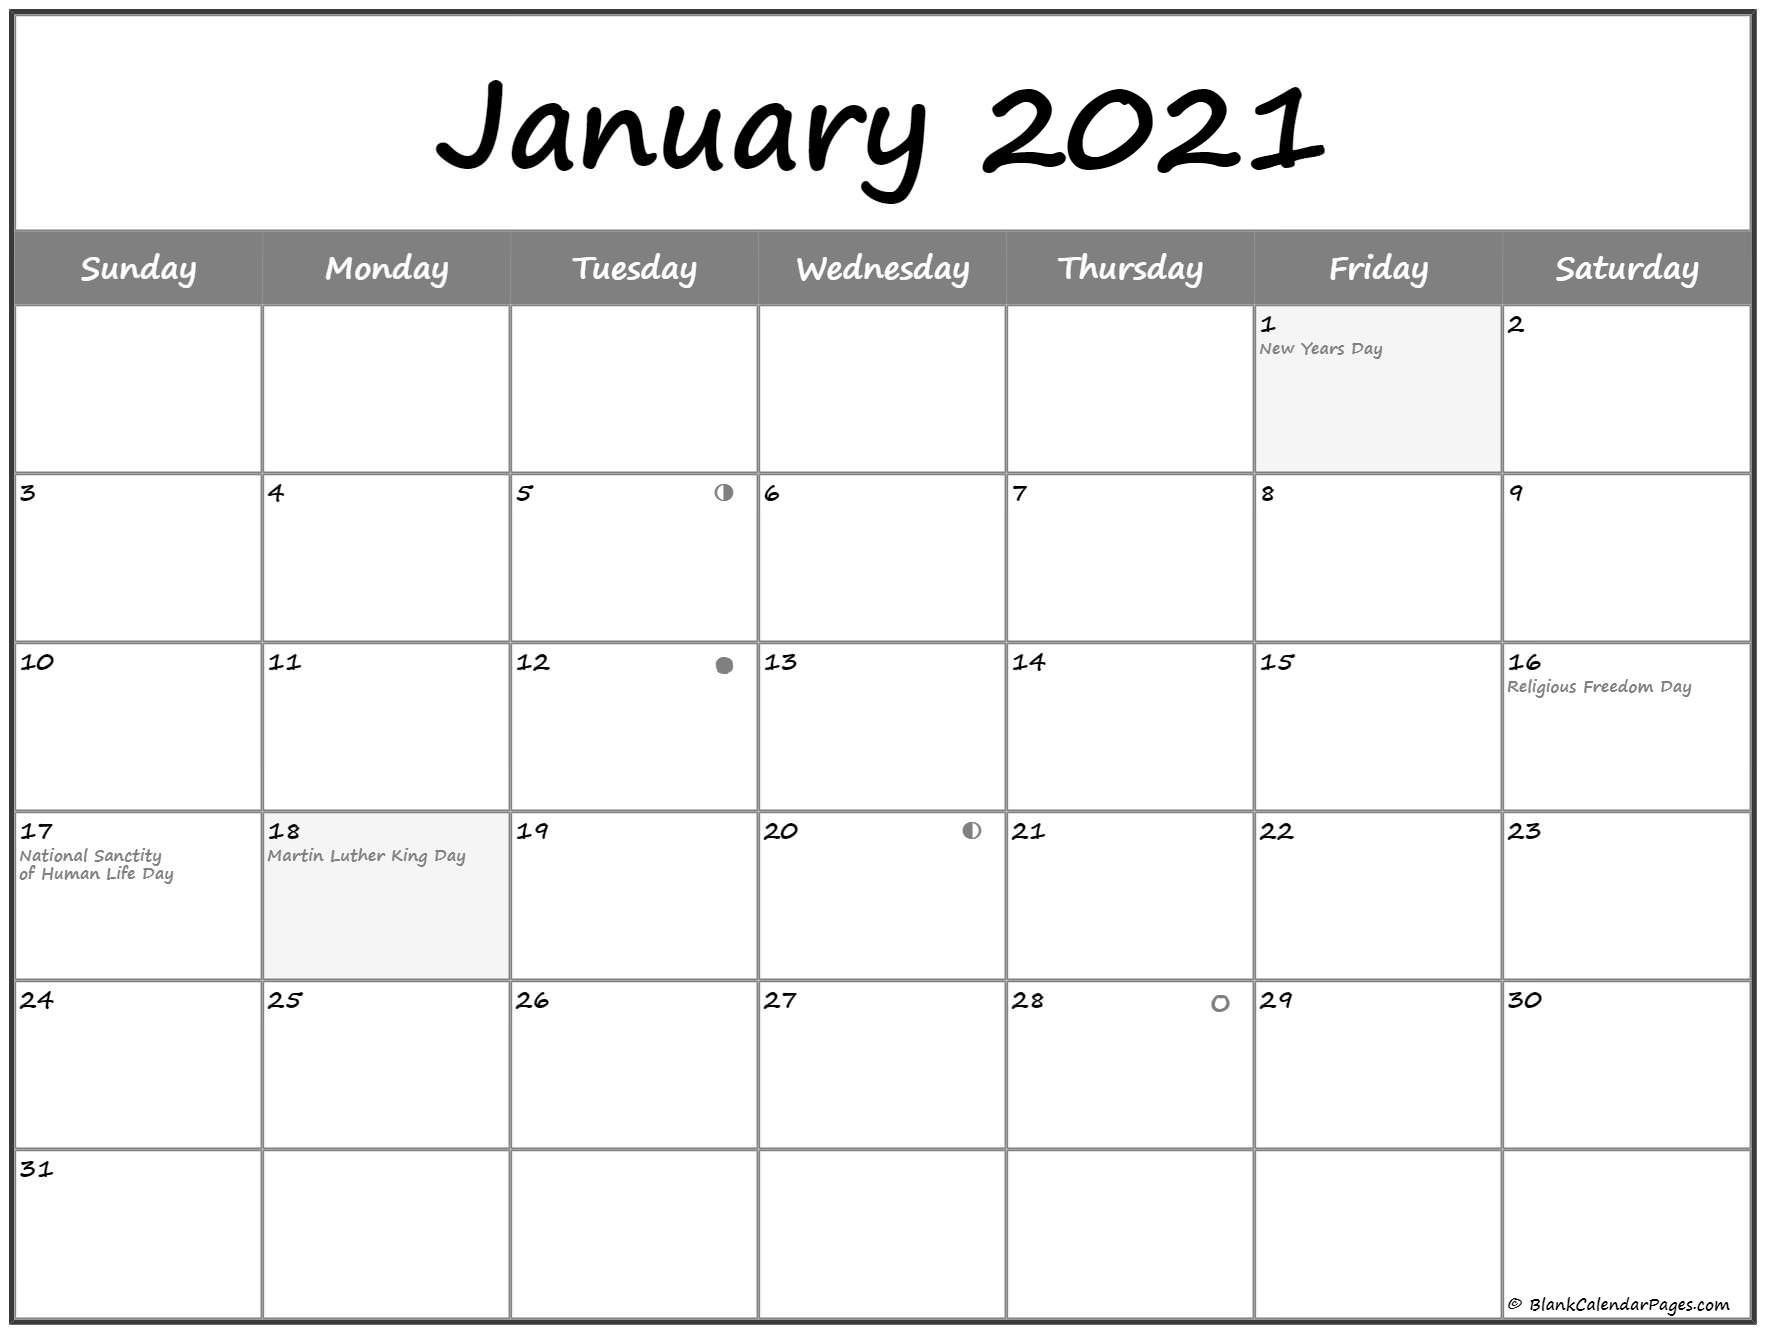 January 2021 Lunar Calendar | Moon Phase Calendar within Printable Yearly Full Moon Calendar For 2021